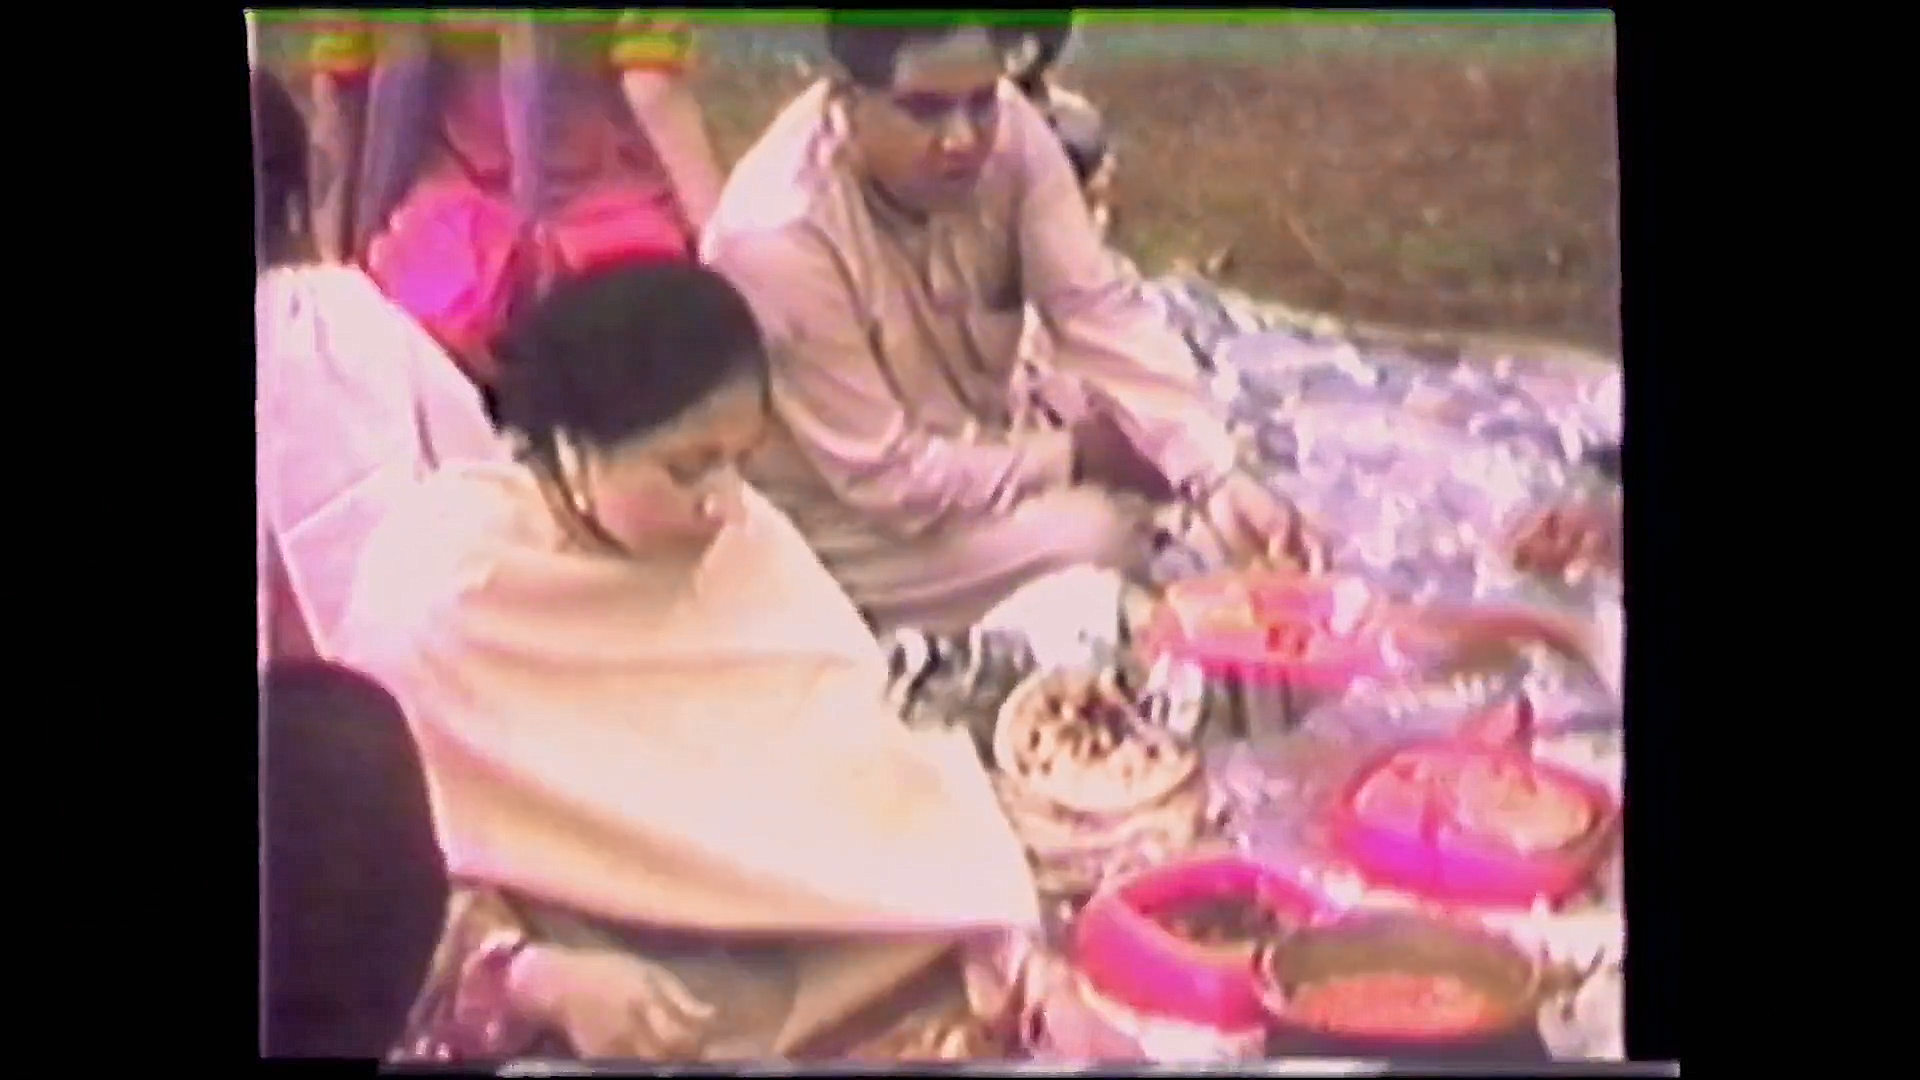 A still from the film: A family picnic in Islamabad before immigrating to Canada. Throughout the film, Arshad shared touching memories that capture his relationship with his parents. Source:    Film Trailer, IMDb